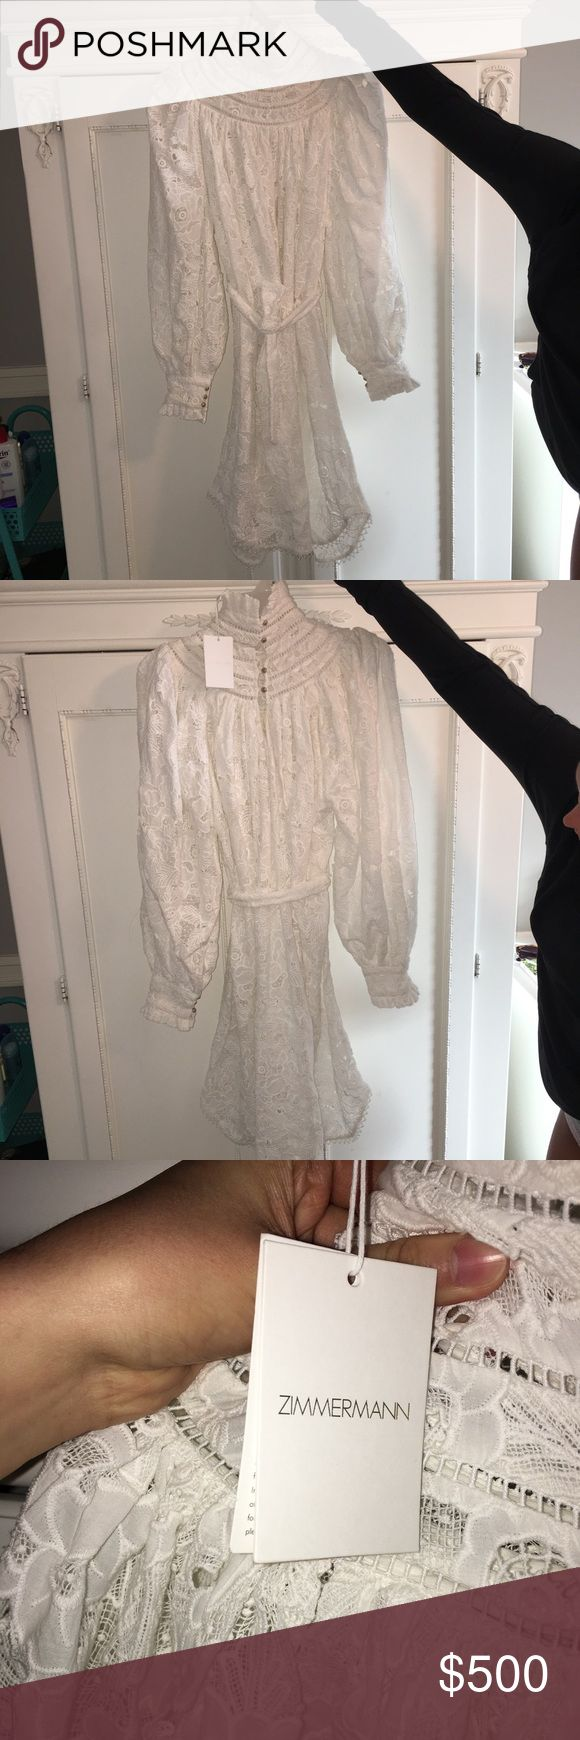 Zimmermann Master Chemisette Tunic Brand new with tags, excellent condition. Incredible, high end quality. Perfect for spring or summer. Size 4-6. Zimmermann Dresses